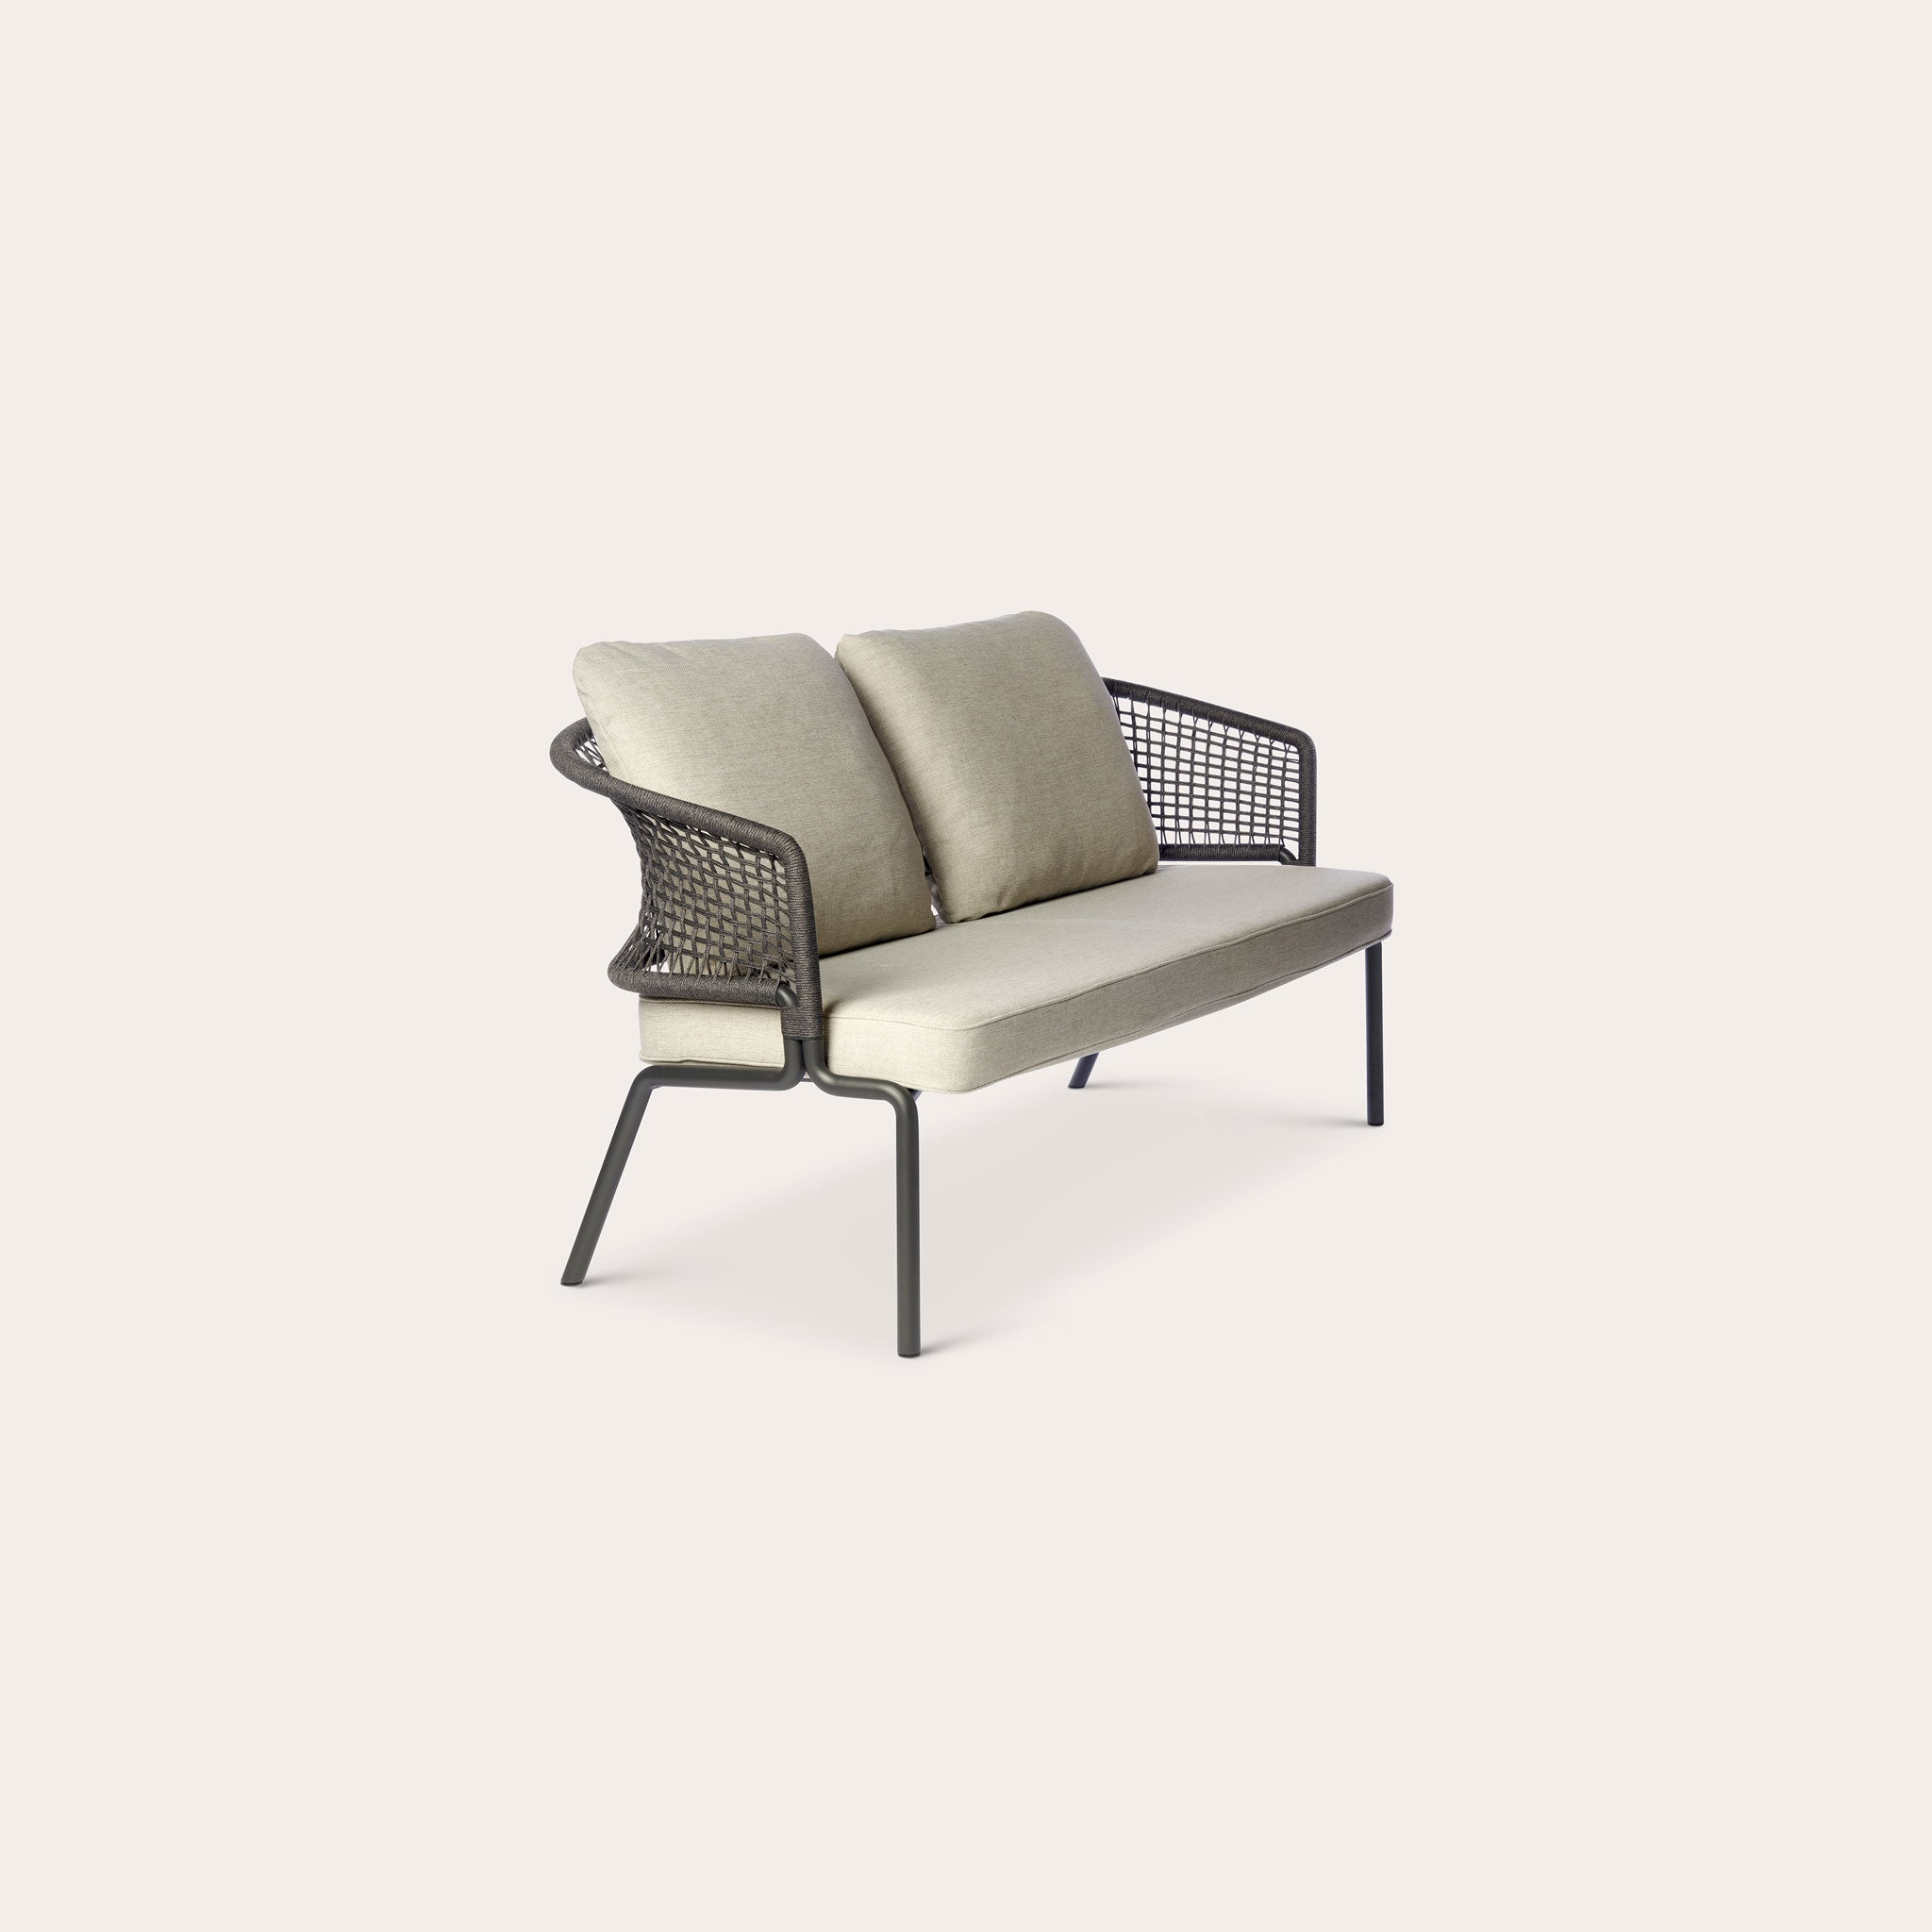 CTR Sofa Outdoor Piergiorgio Cazzaniga Designer Furniture Sku: 007-200-11117